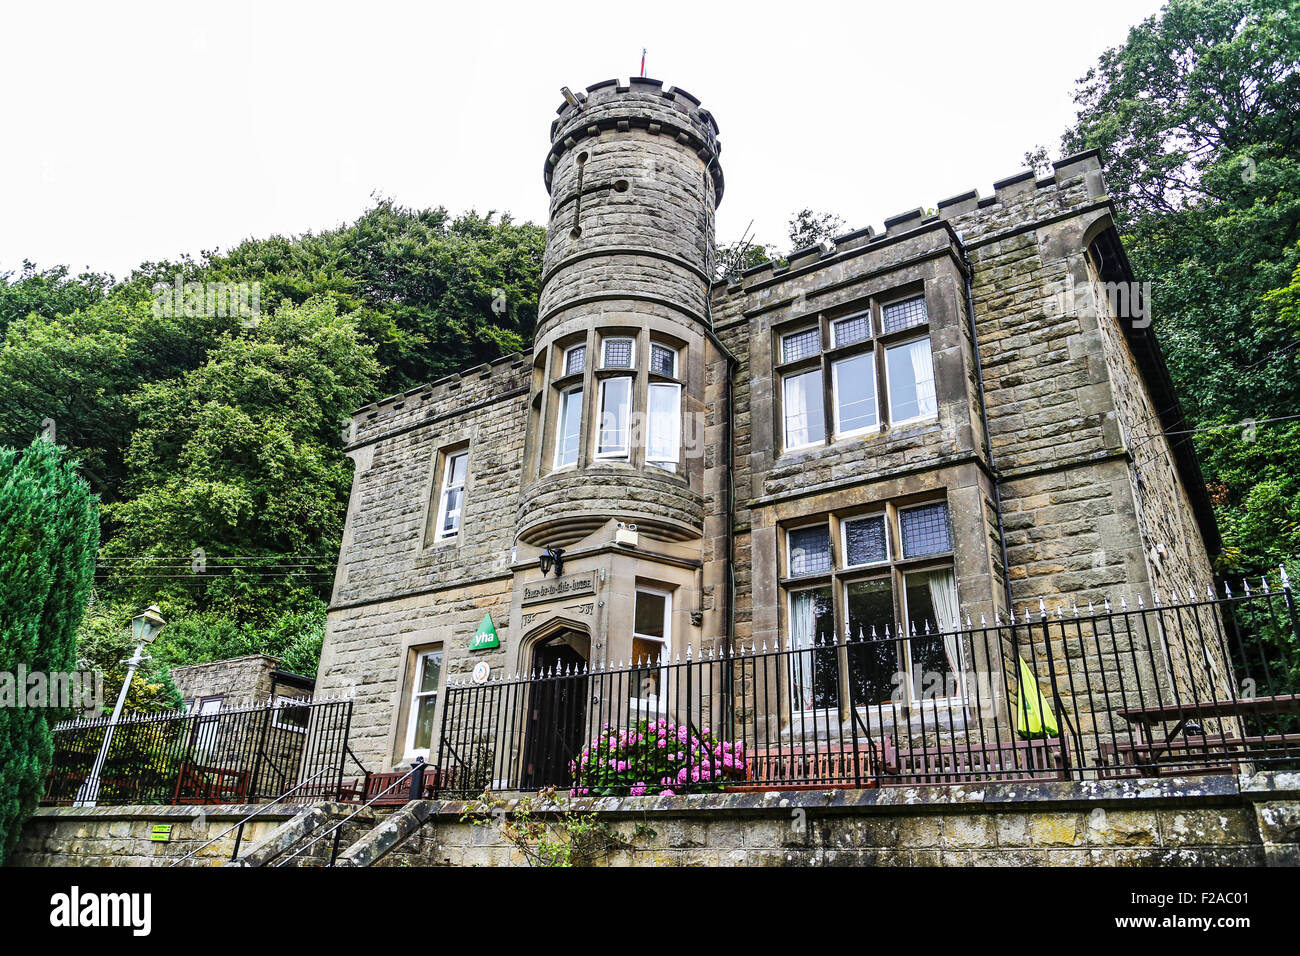 The YHA hostel, Eyam, England, UK - Stock Image